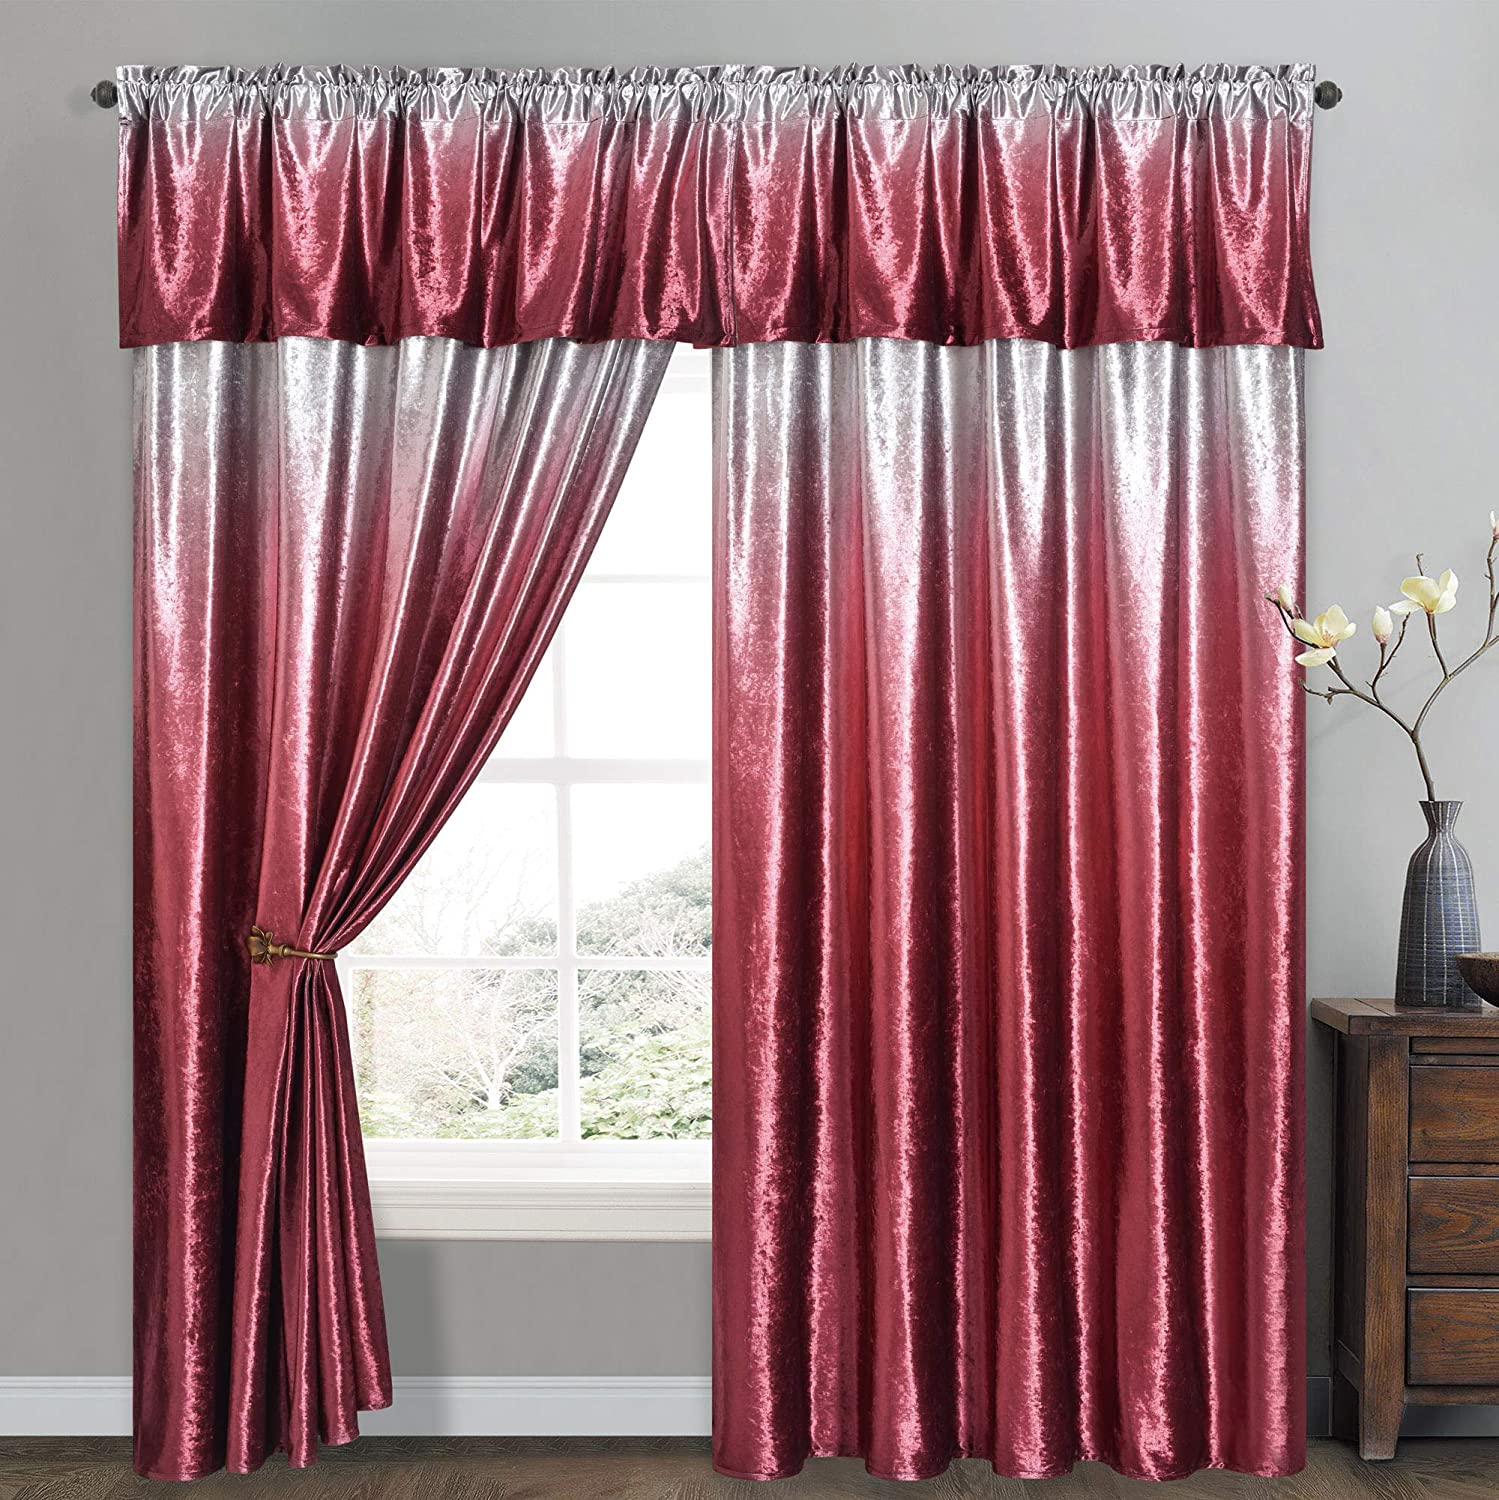 Vibrant Victor - Ice Crushed Velvet Curtain with Attached Straight Valance. Siver Grey Ground with Ombre Color Print. 2pcs Set. Each pc 57W by 90L inch with 18L inch Valance. (Gradient Wine)